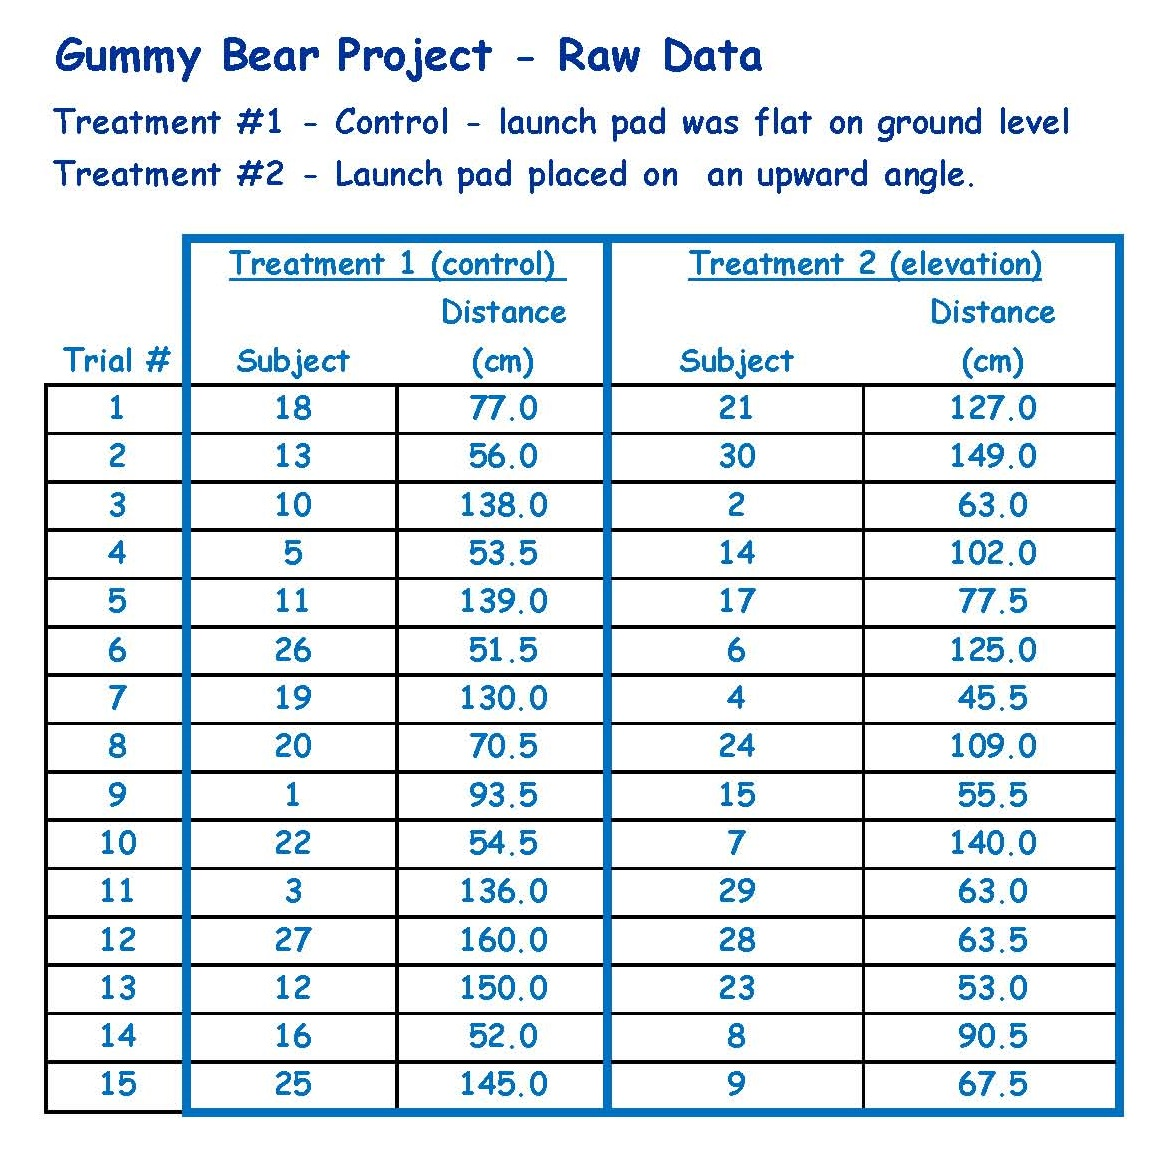 worksheet Gummy Bear Experiment Worksheet the gummy bear project see sample httpwww brunswick k12 me uspgrovesfiles201305gummy raw data table jpg